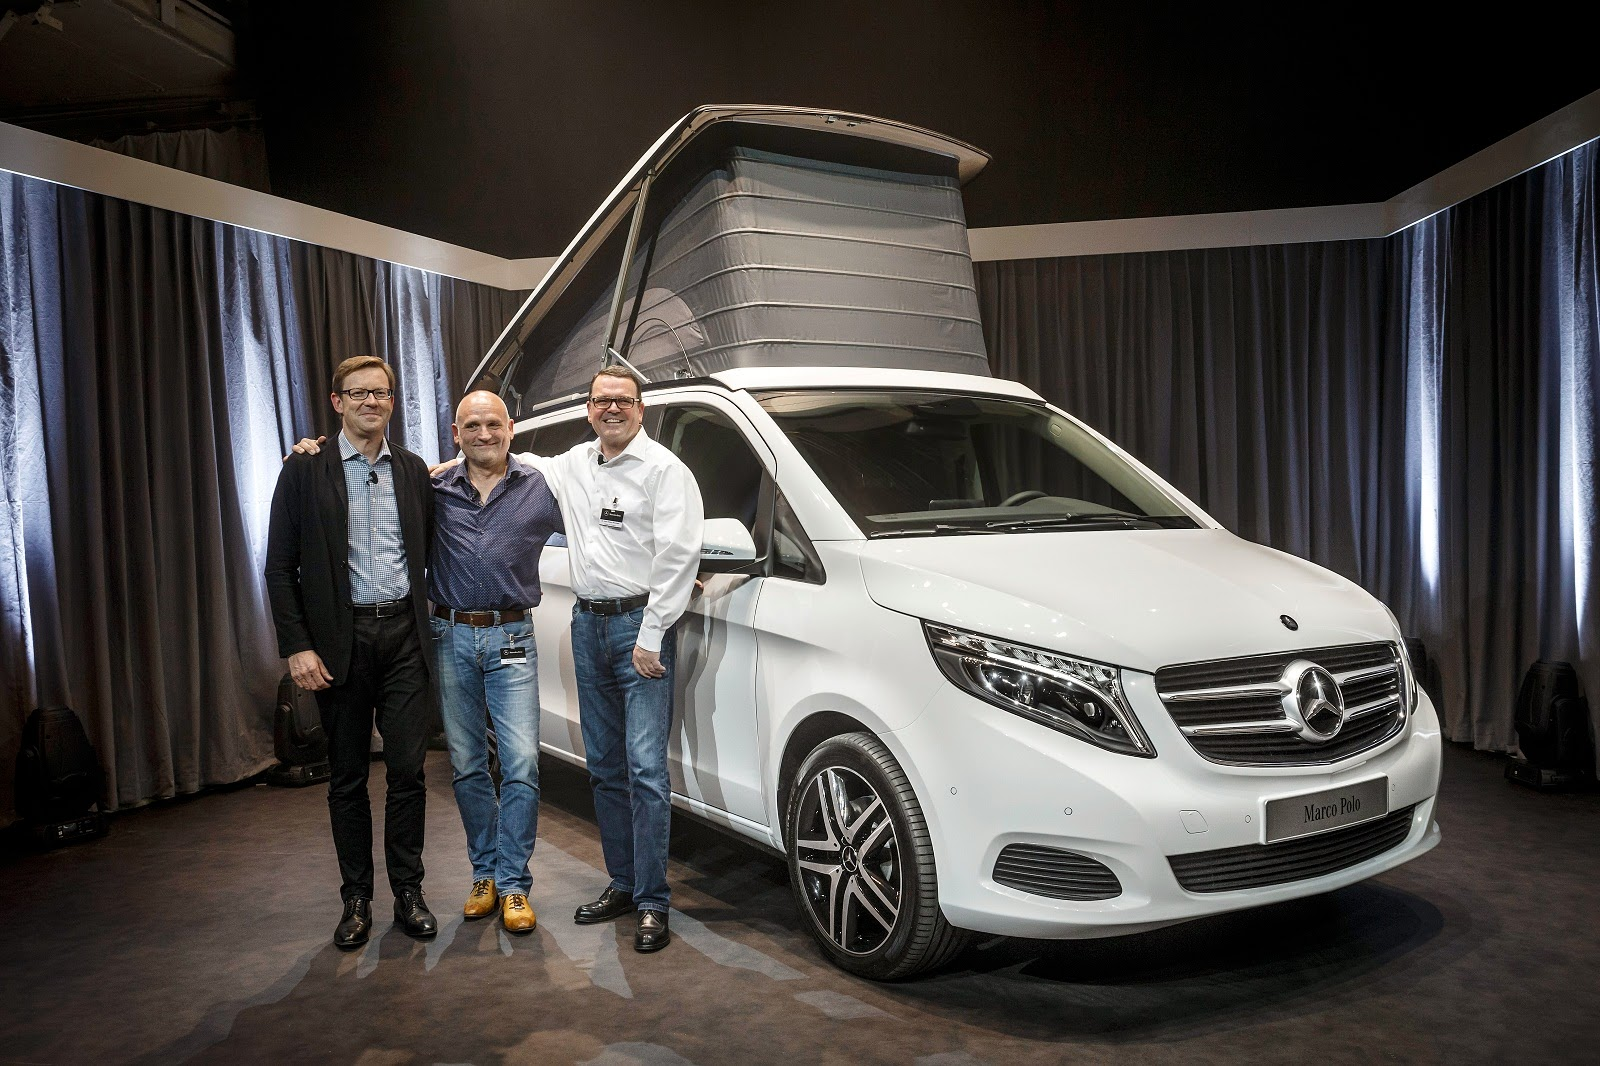 mercedes benz marco polo and marco polo activity new compact camper vans and recreational. Black Bedroom Furniture Sets. Home Design Ideas